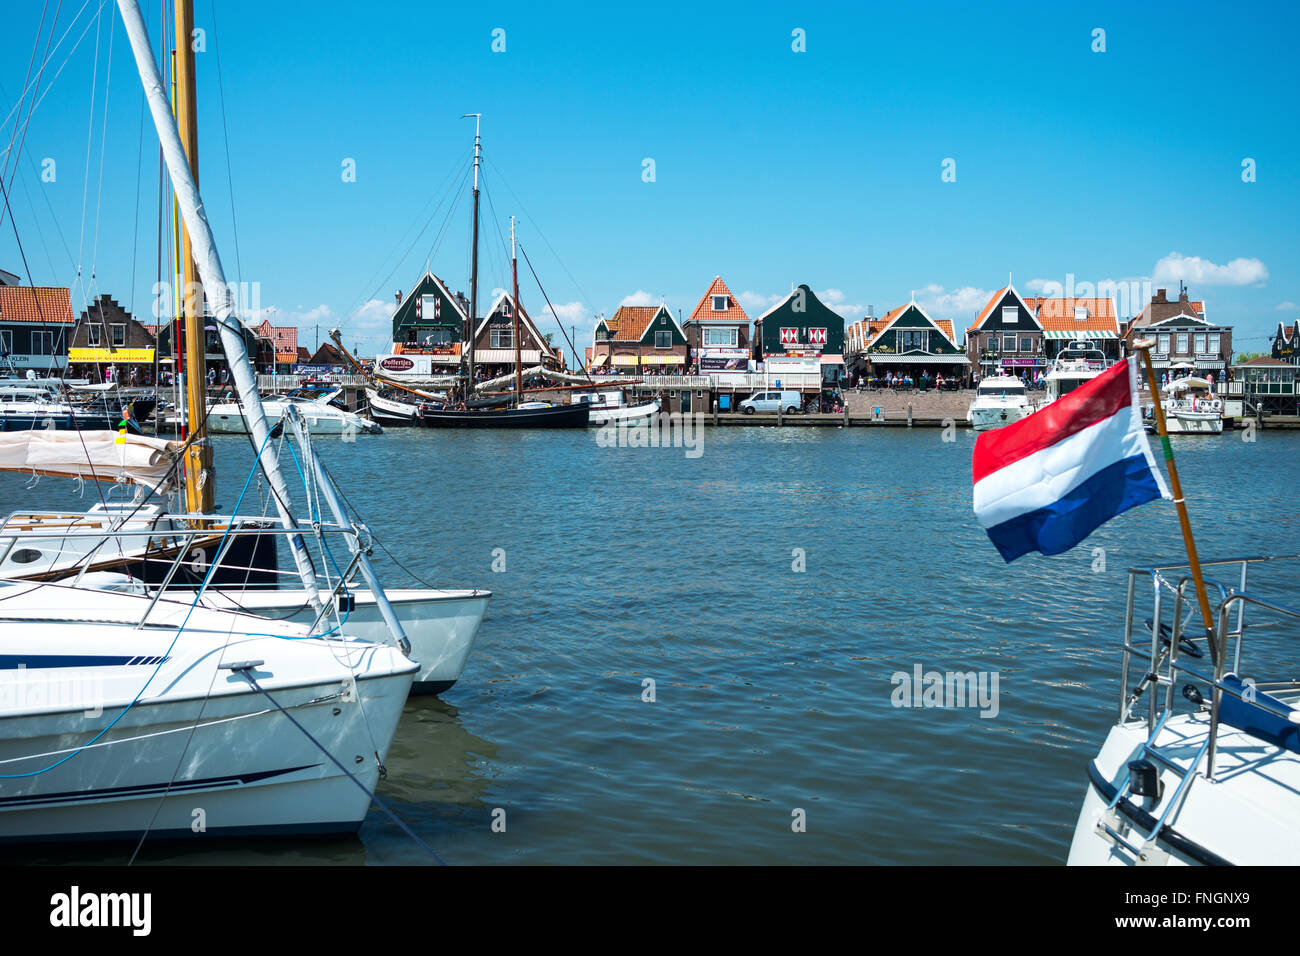 Amsterdam, Waterland district, Volendam, boats in the harbour in front of the town center Stock Photo